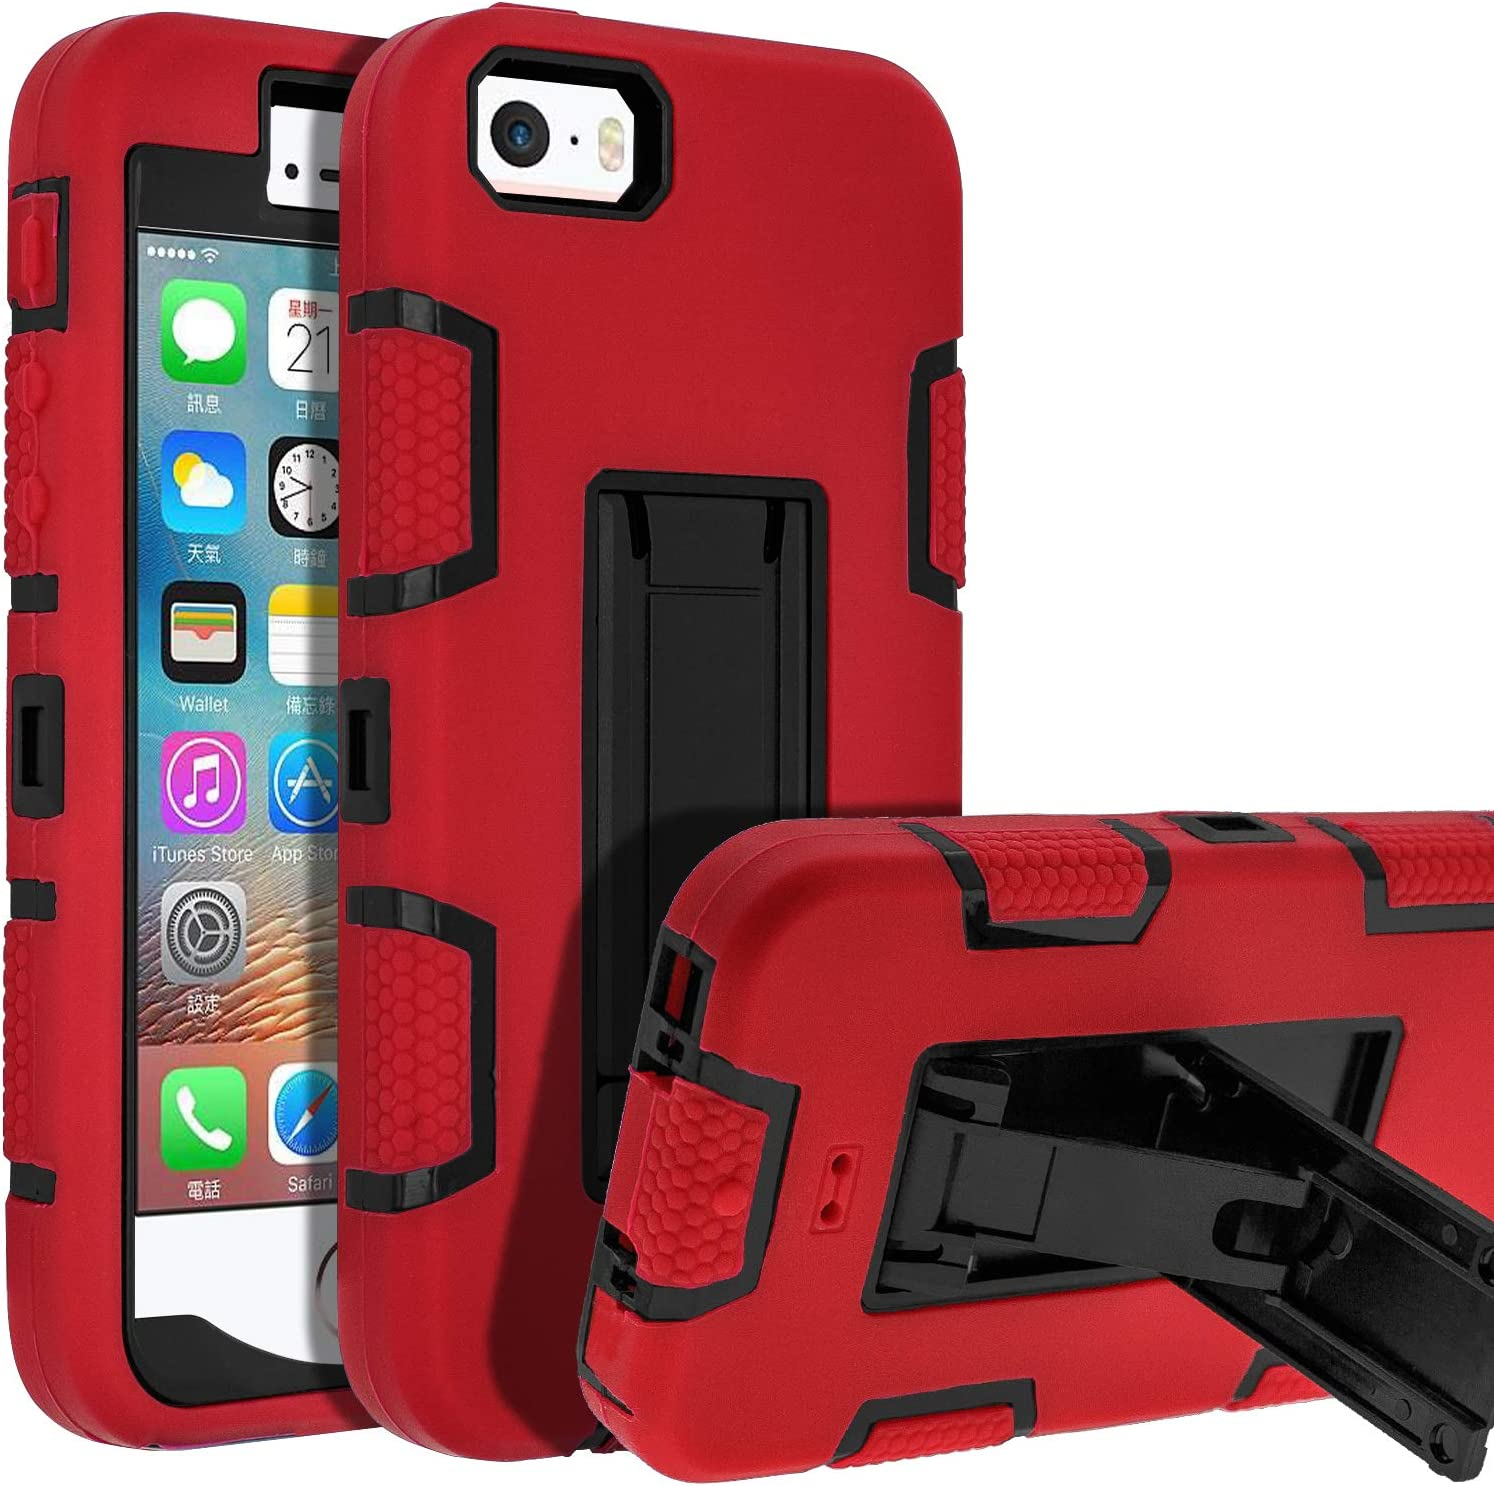 5s iPhone Case, iPhone 5 Case,SENON Shockproof Anti-Scratch Anti-Fingerprint Kickstand Protective Case Cover for Apple iPhone 5S/5, Red